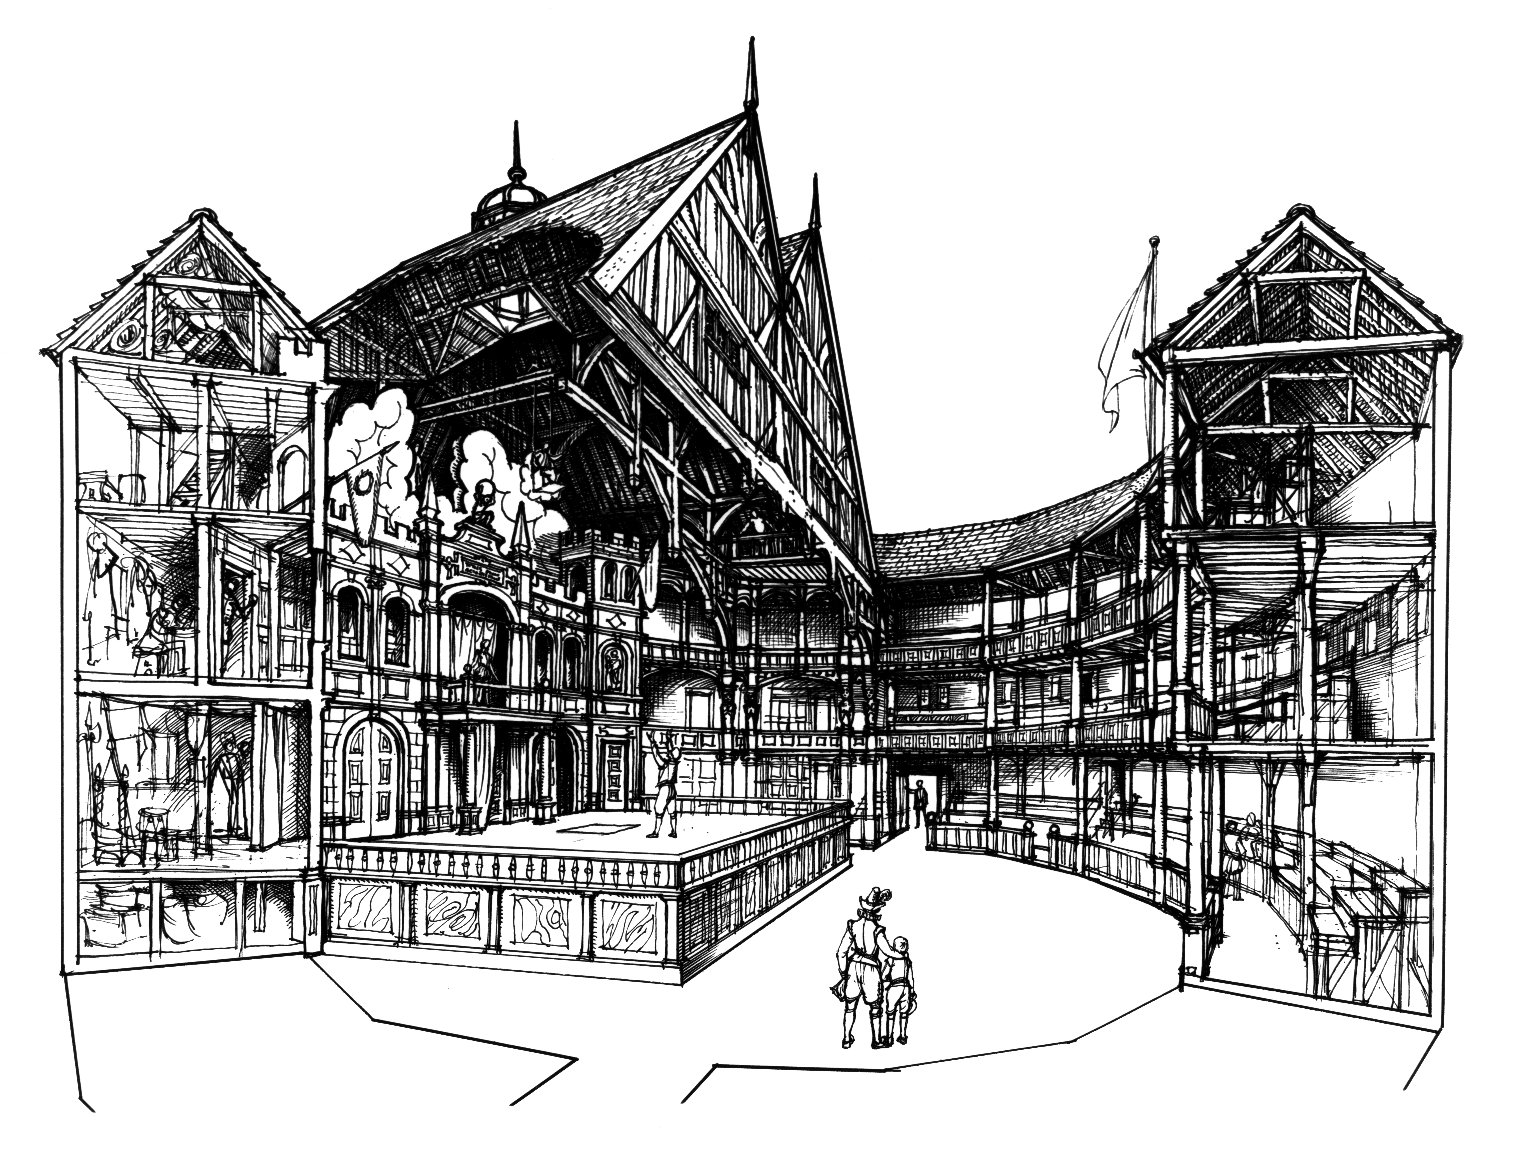 Conjectural, cut-away view of the interior of the Globe by C. Walter Hodges. Image courtesy of the Folger Digital Image Collection.